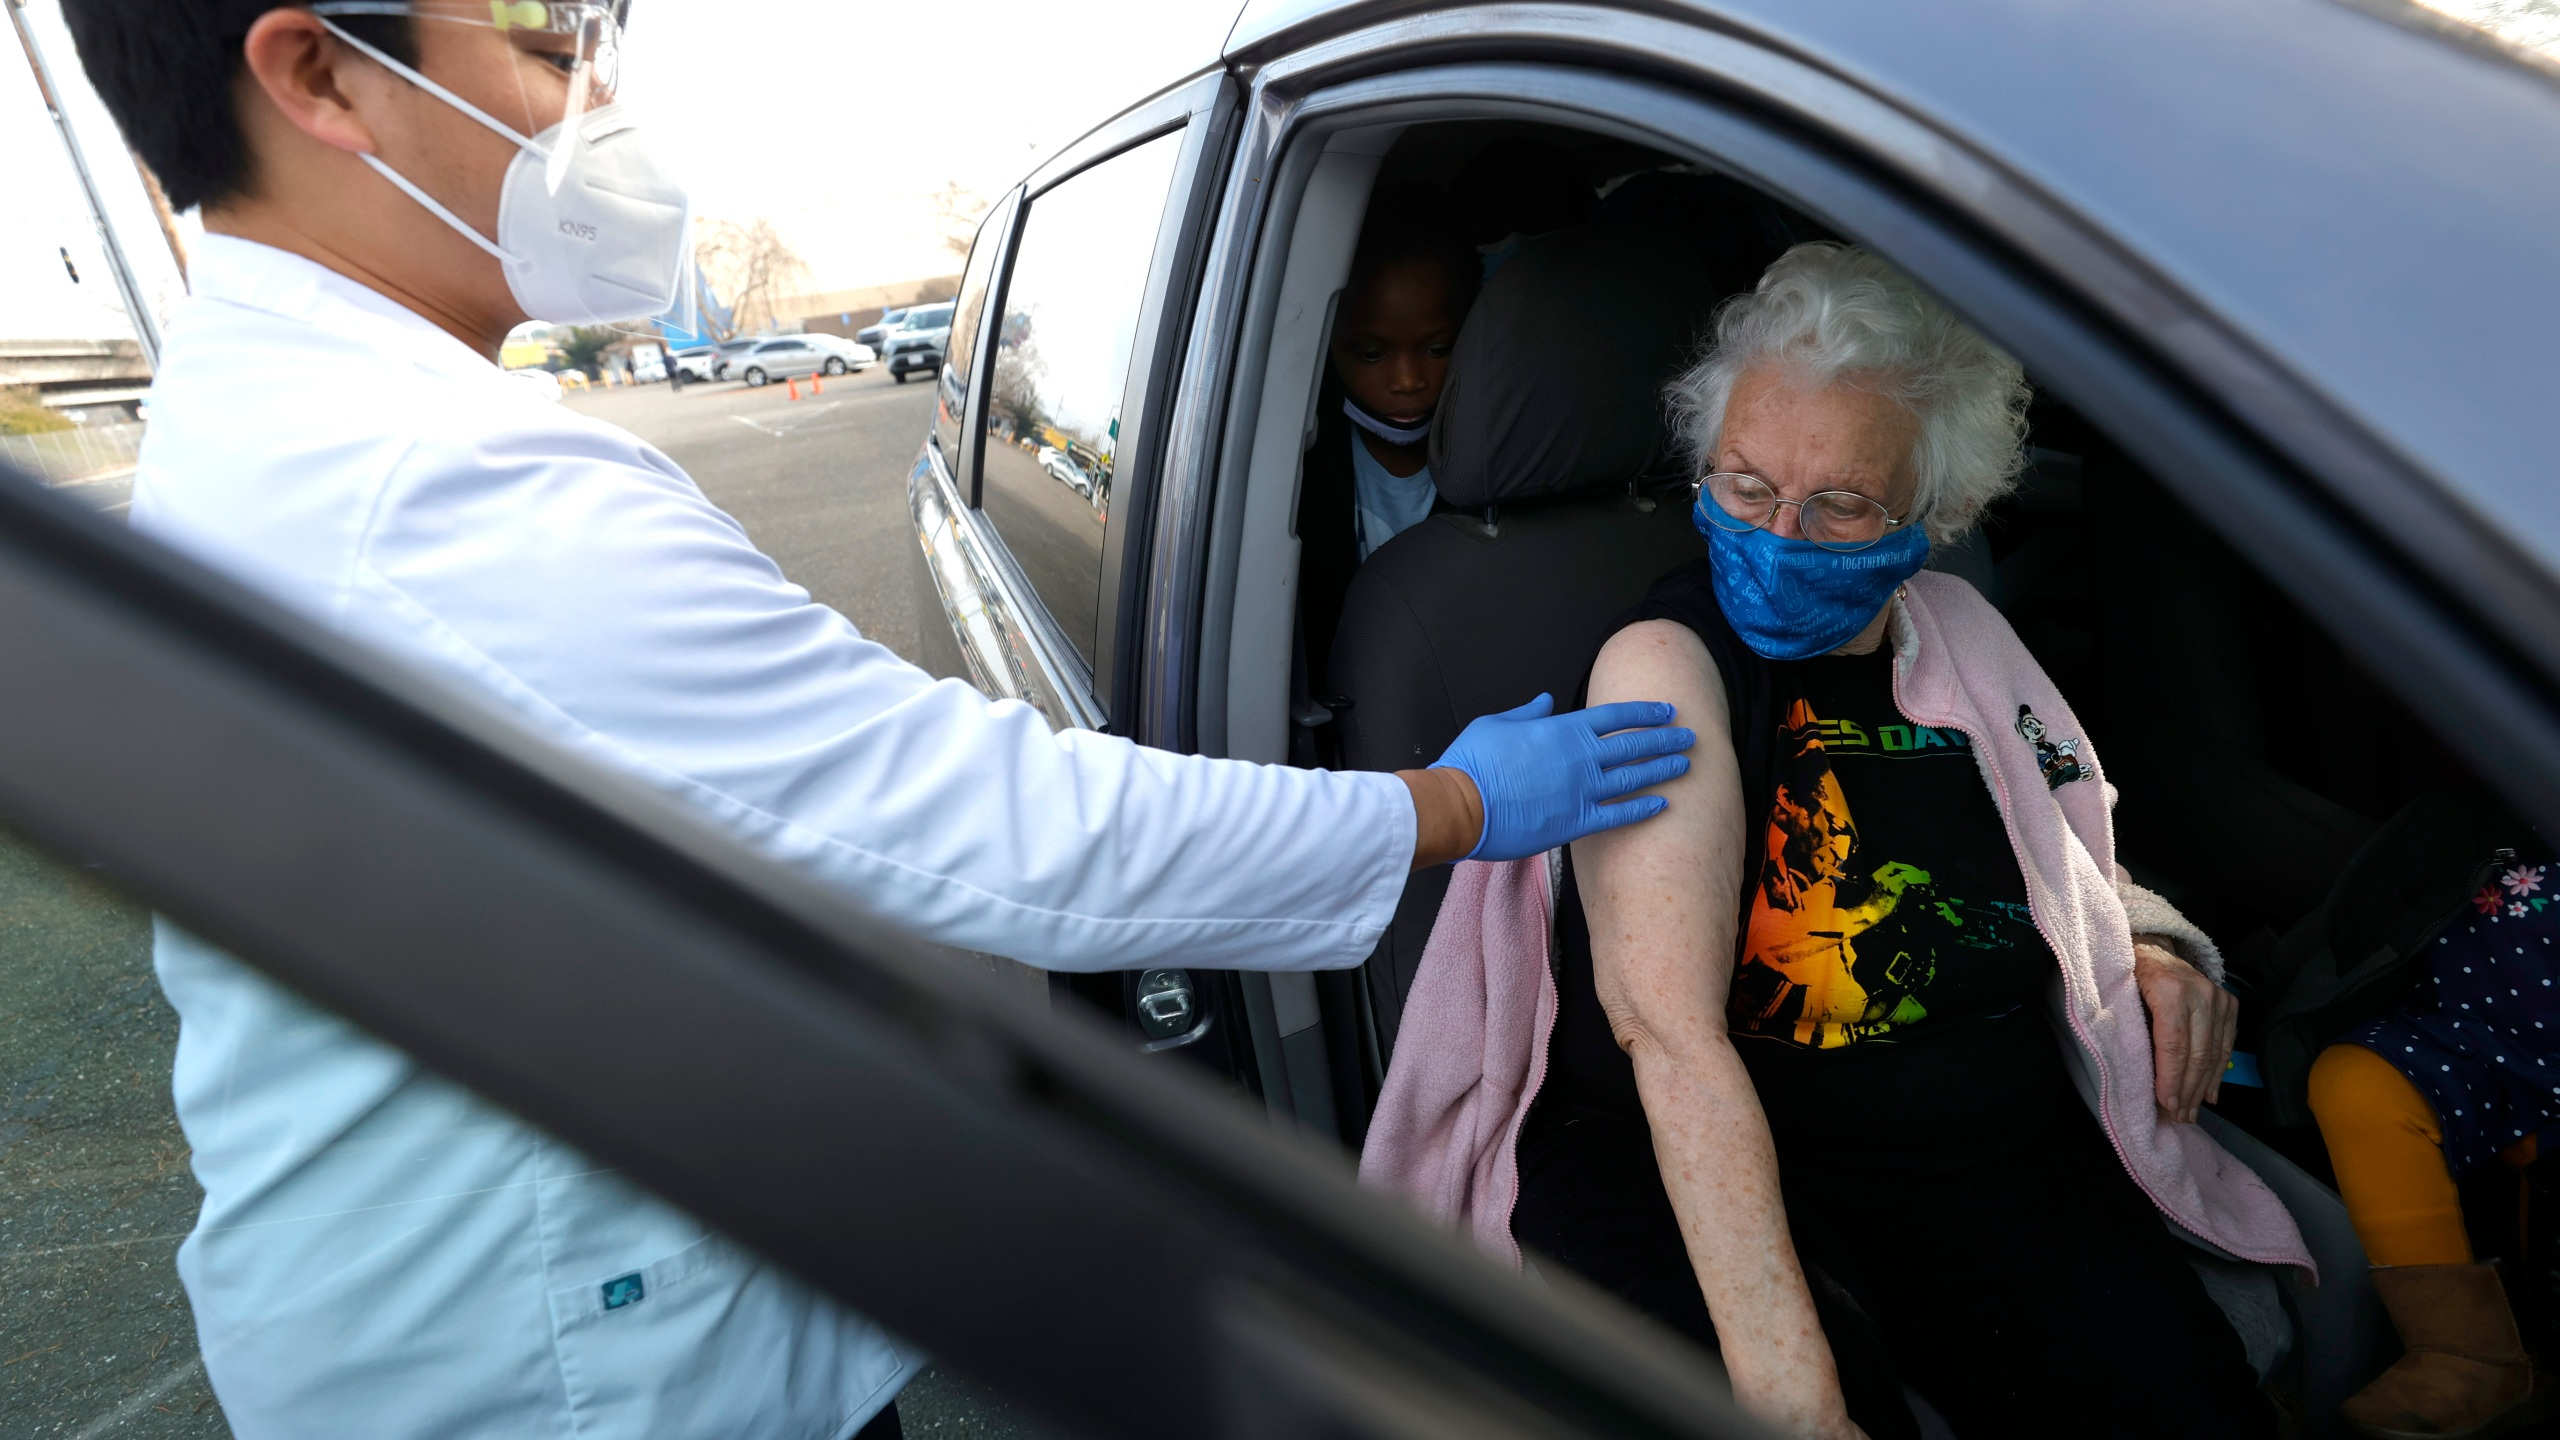 A pharmacist prepares to administer a COVID-19 vaccination during a drive-thru vaccination clinic at the Sonoma County Fairgrounds on Jan. 13, 2021 in Santa Rosa. (Justin Sullivan/Getty Images)